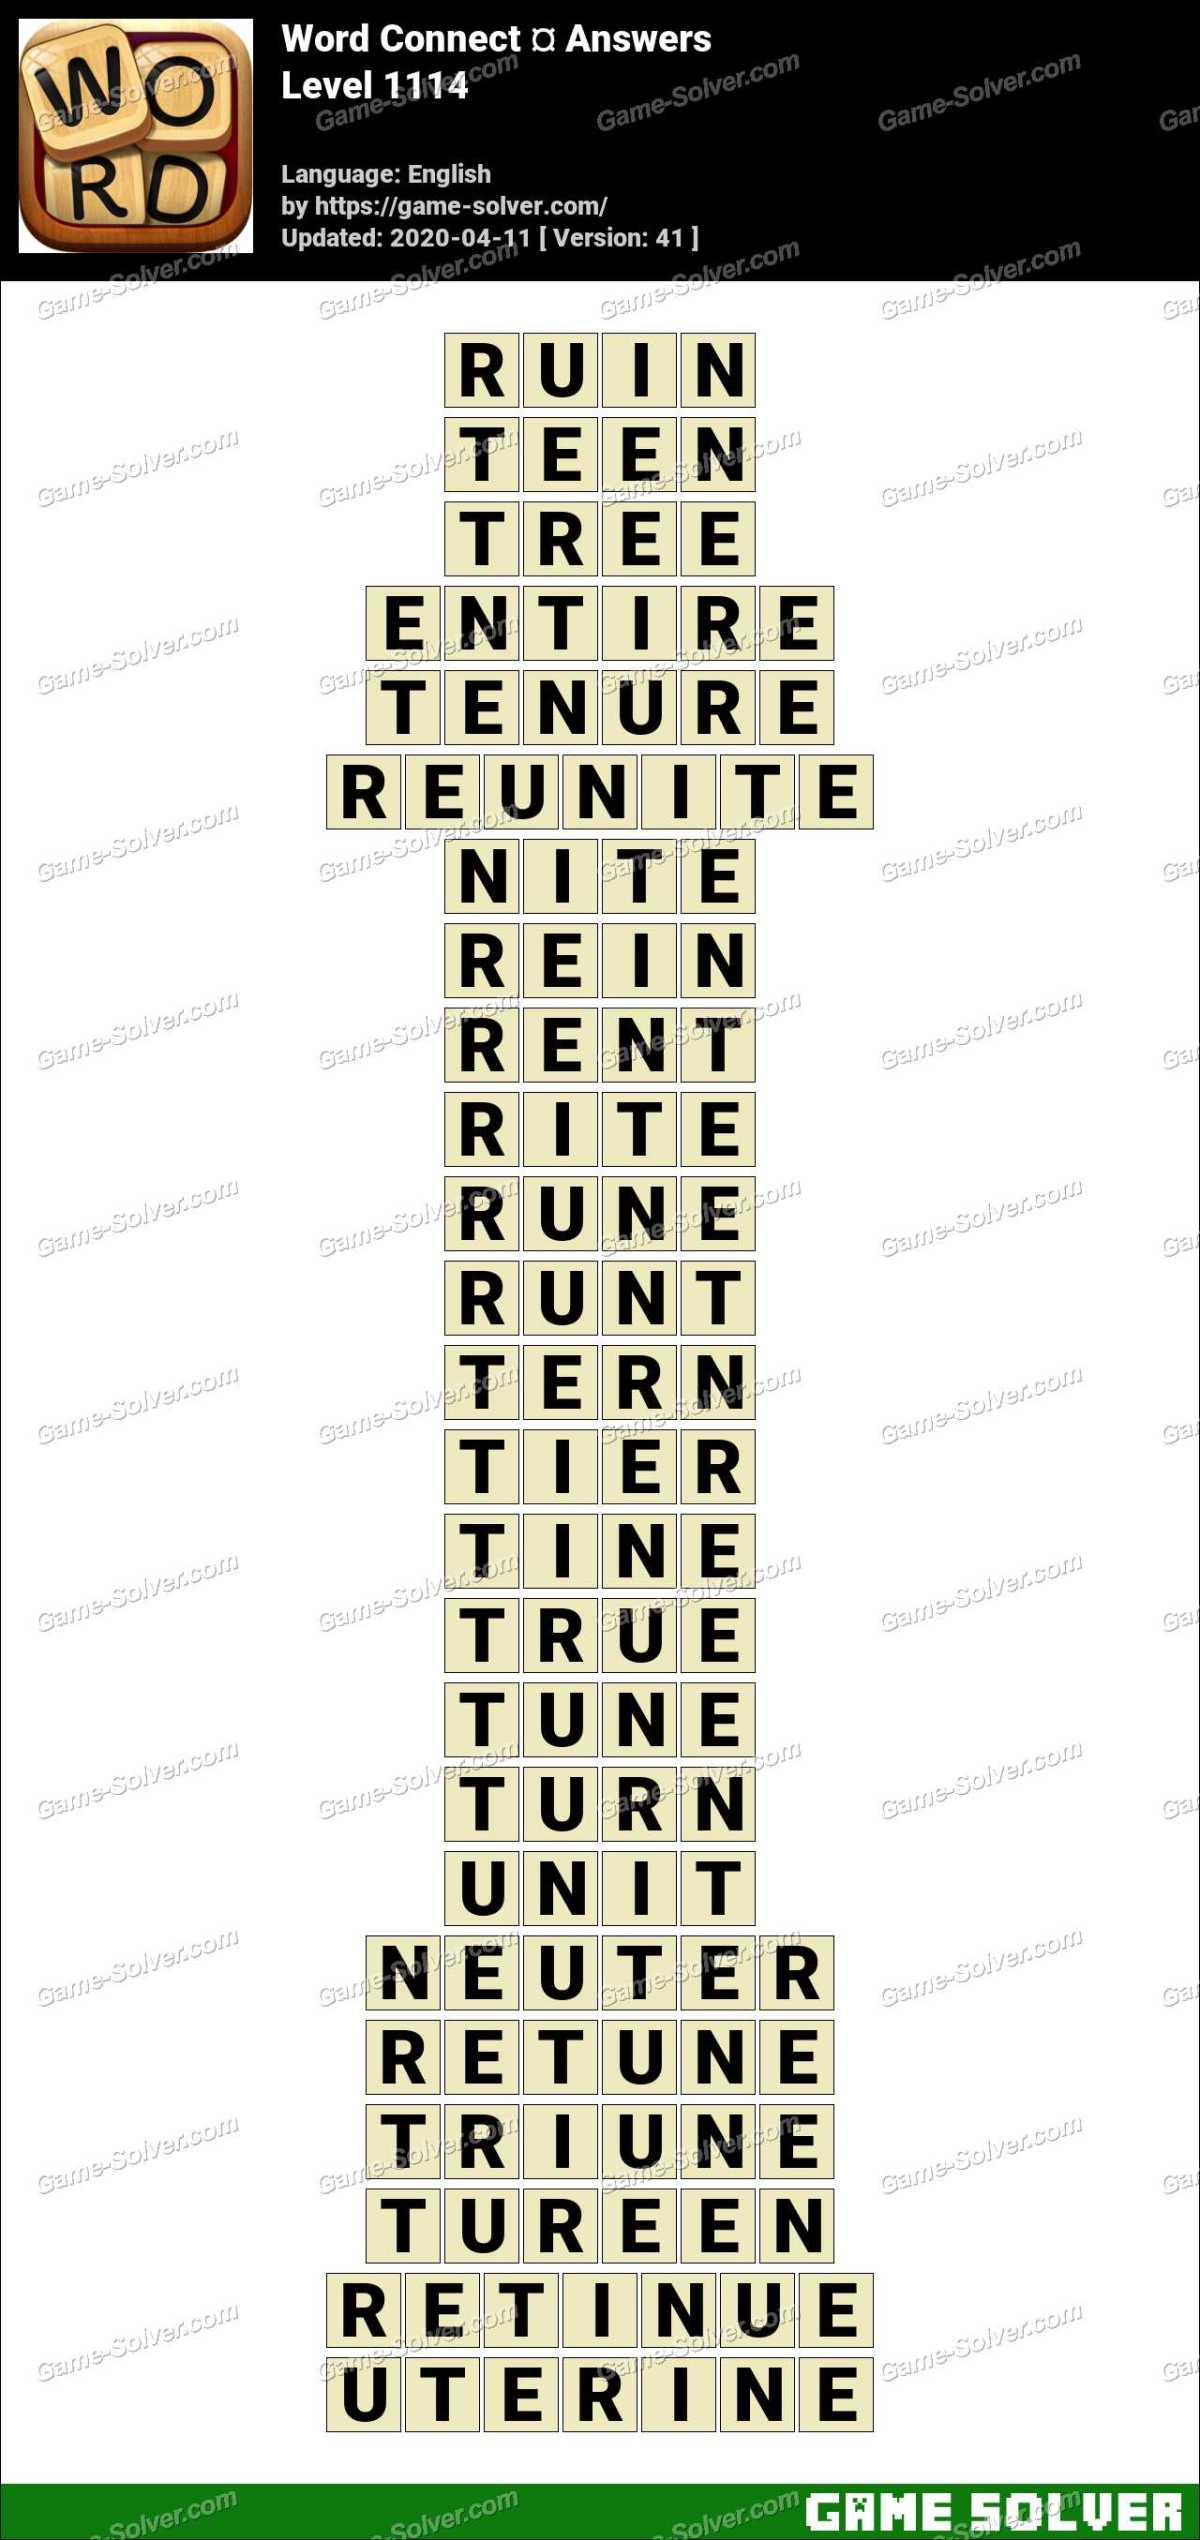 Word Connect Level 1114 Answers